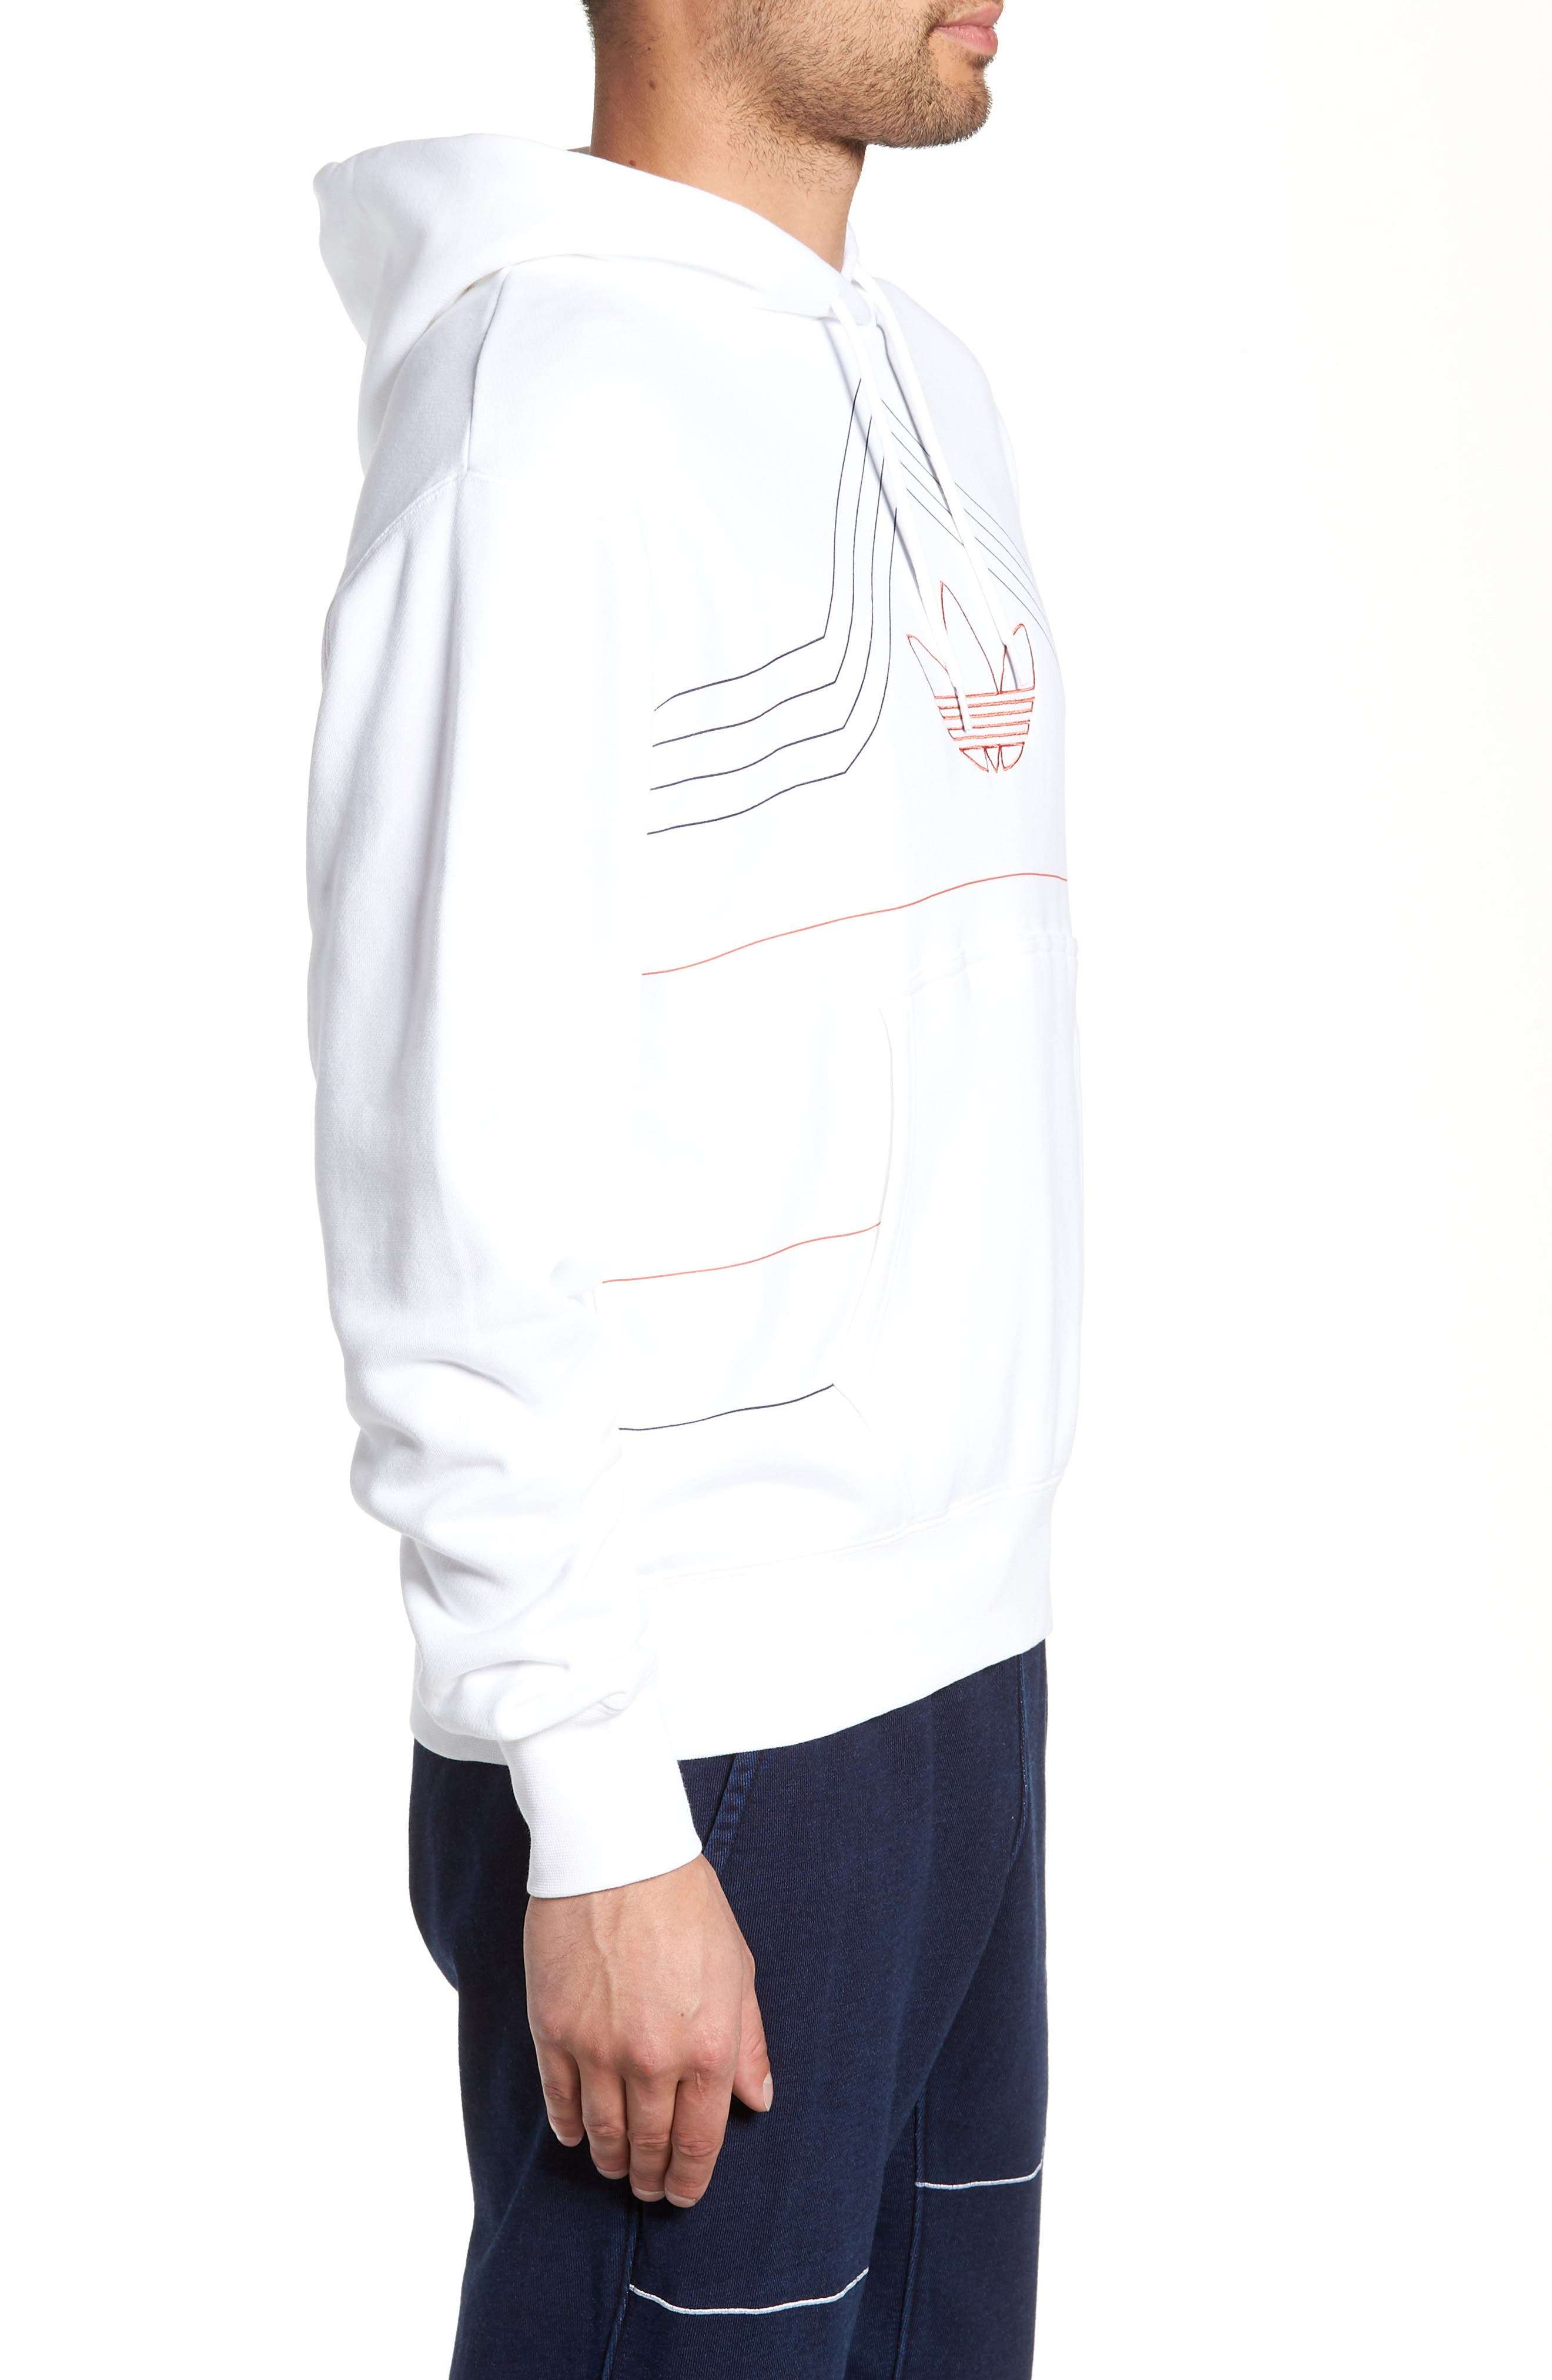 ADIDAS ORIGINALS, Ewing Hooded Sweatshirt, Alternate thumbnail 4, color, WHITE/ RAW AMBER